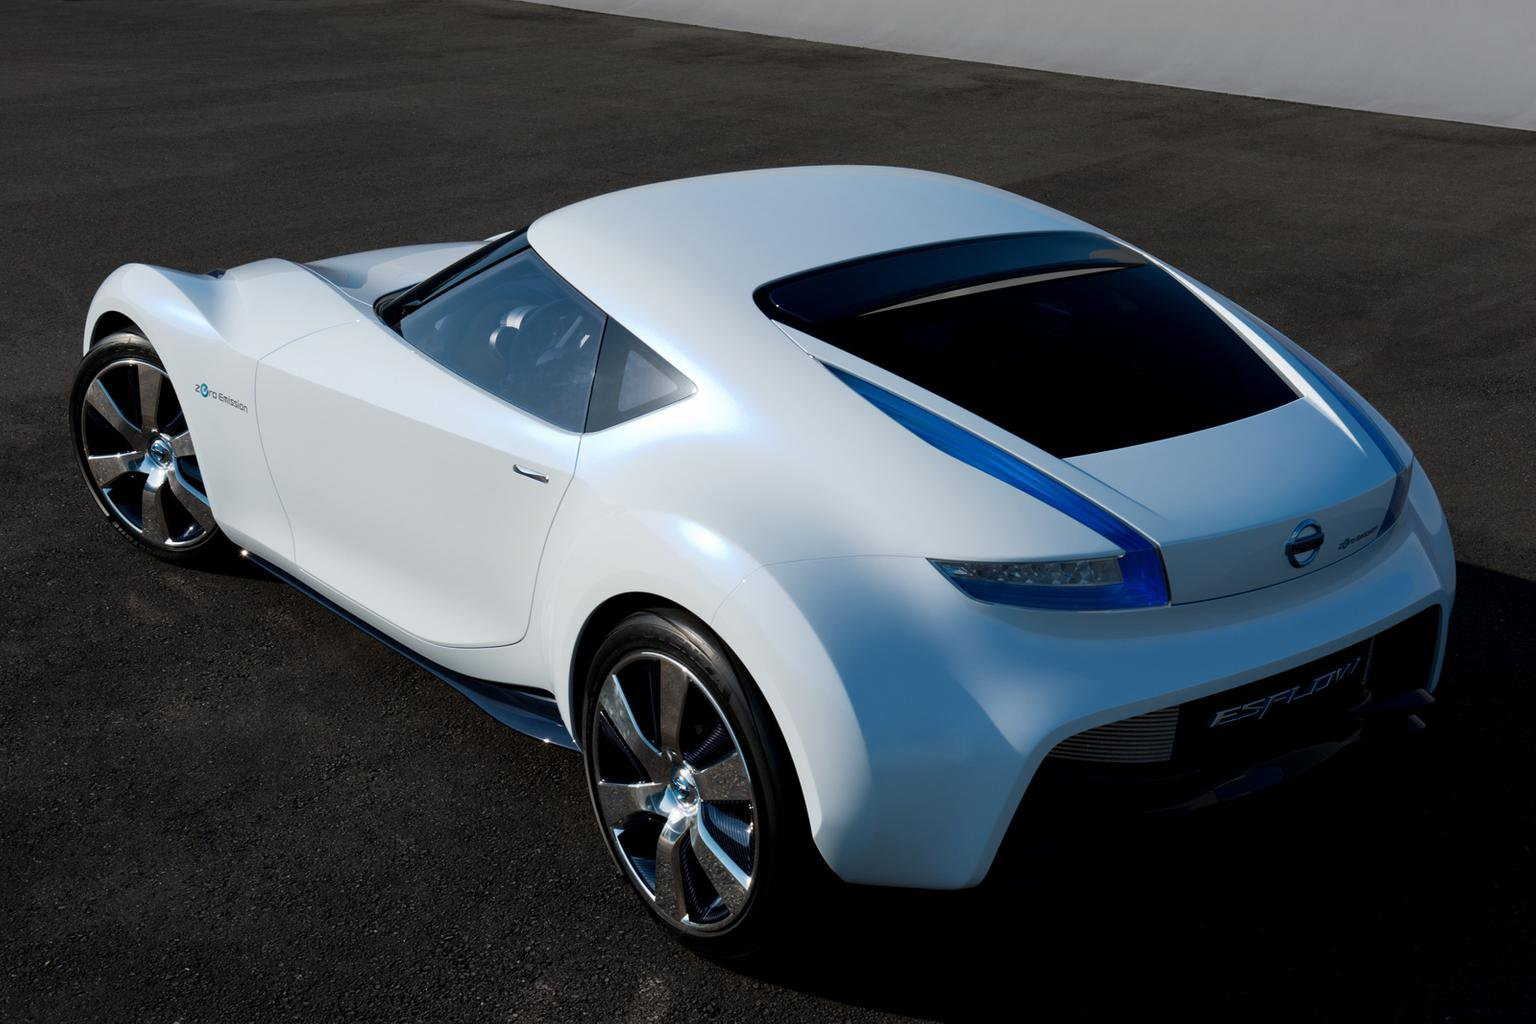 Nissan plans two sports car concepts for Tokyo show